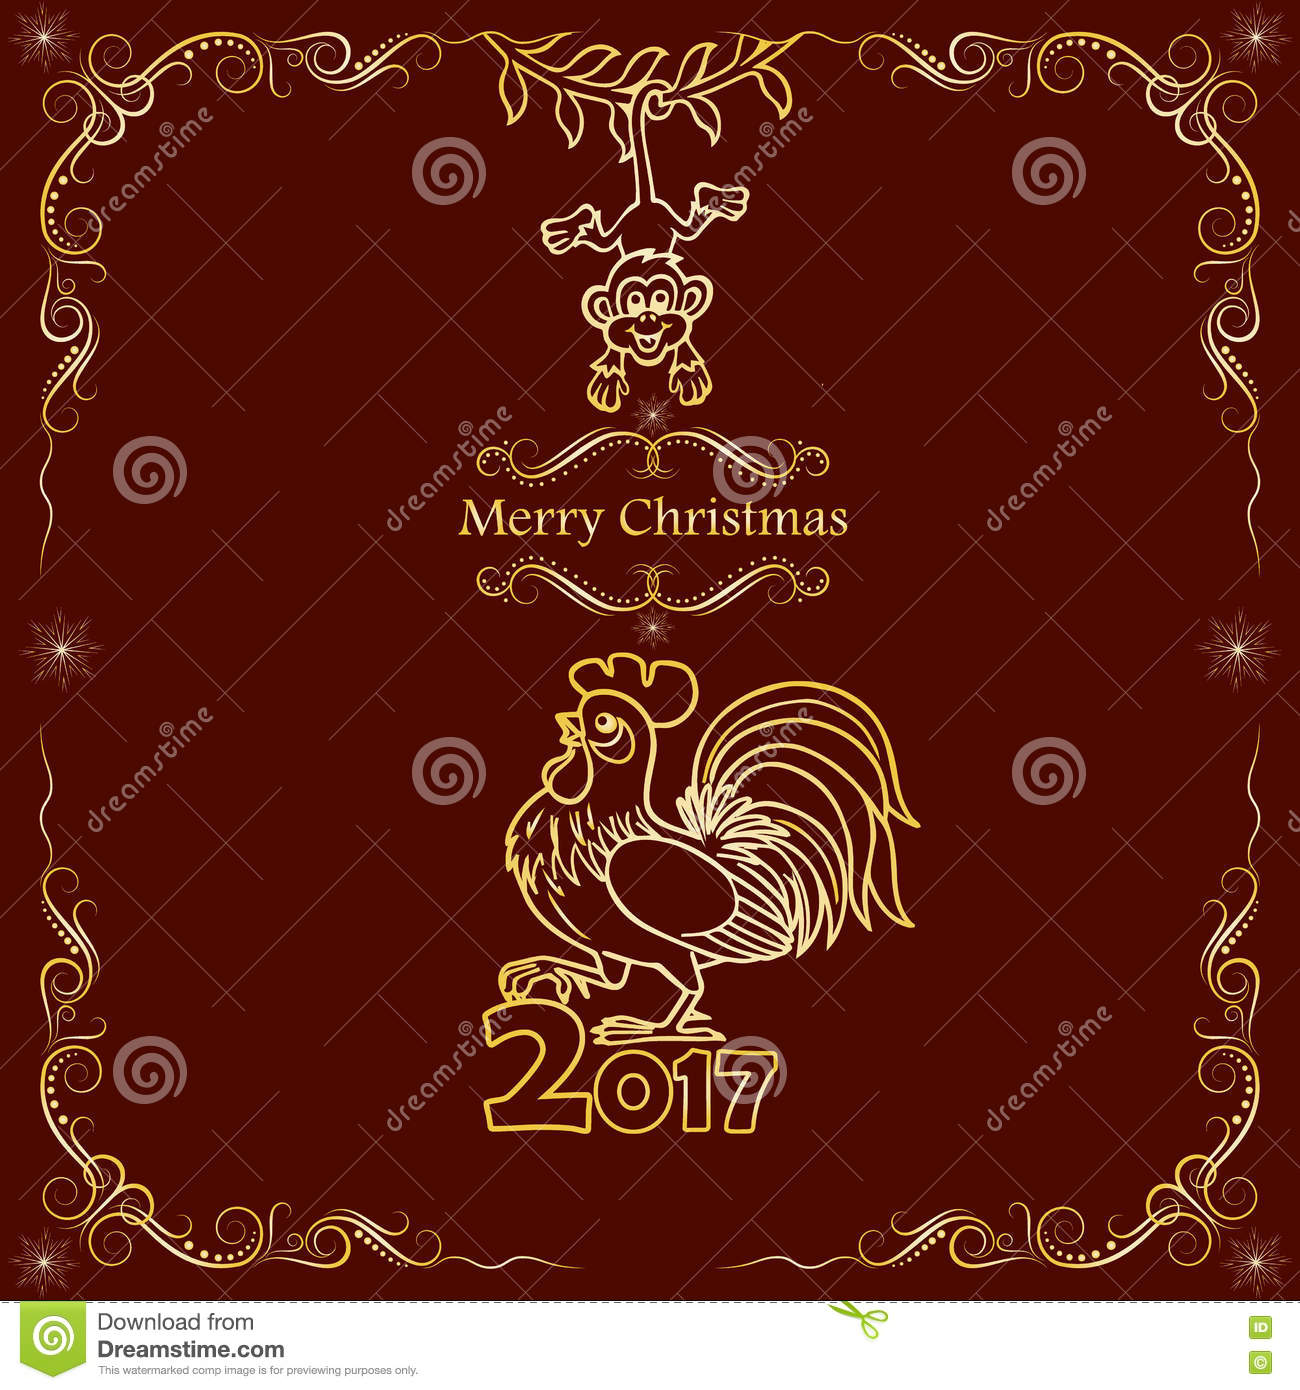 Christmas Card Design 2017 Chinese New Year Of The Rooster Stock